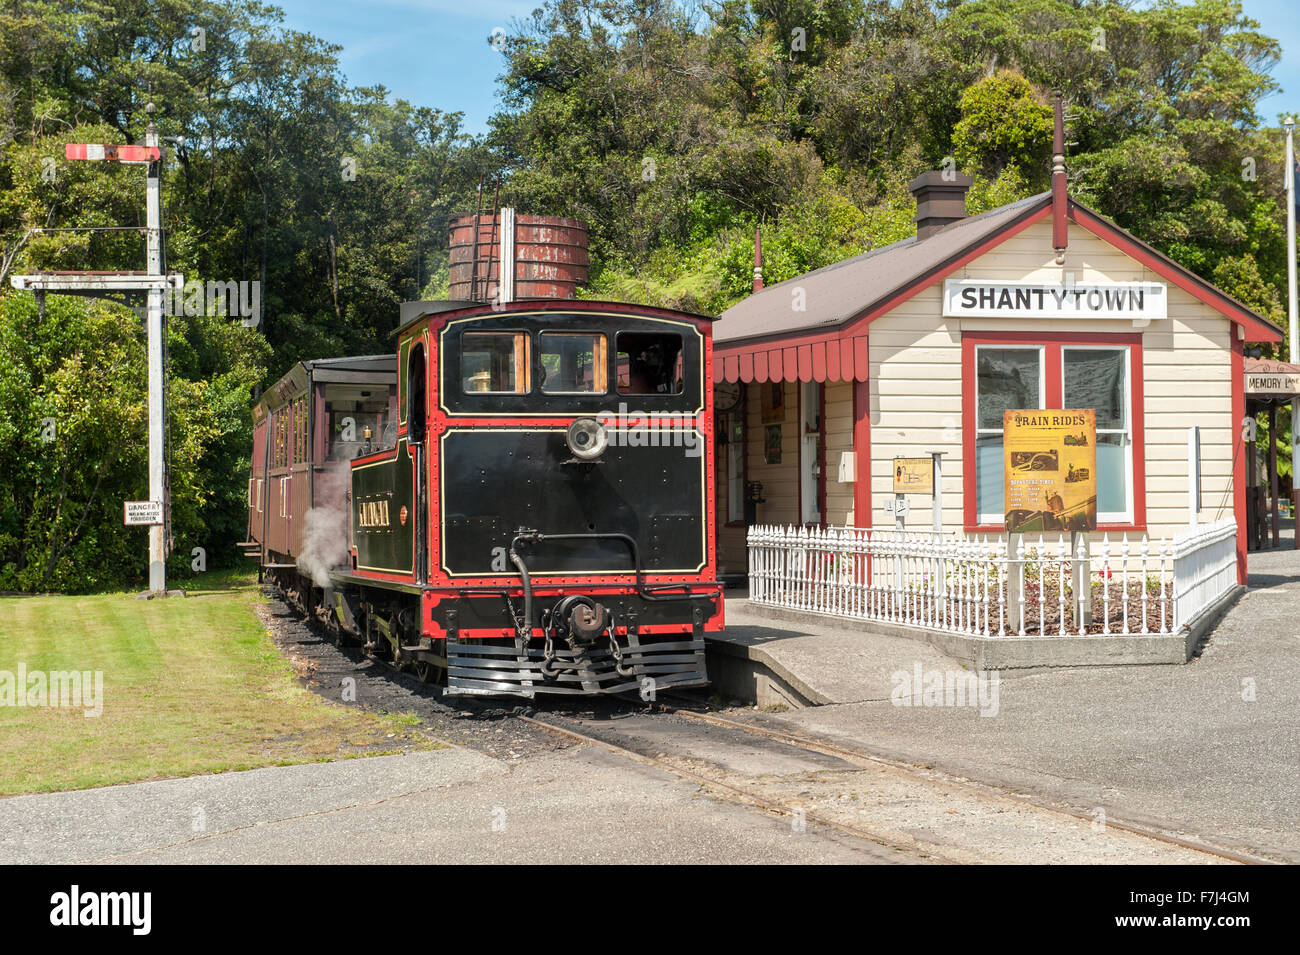 Shantytown Heritage Park south of Greymouth on South Island, New Zealand. Stock Photo